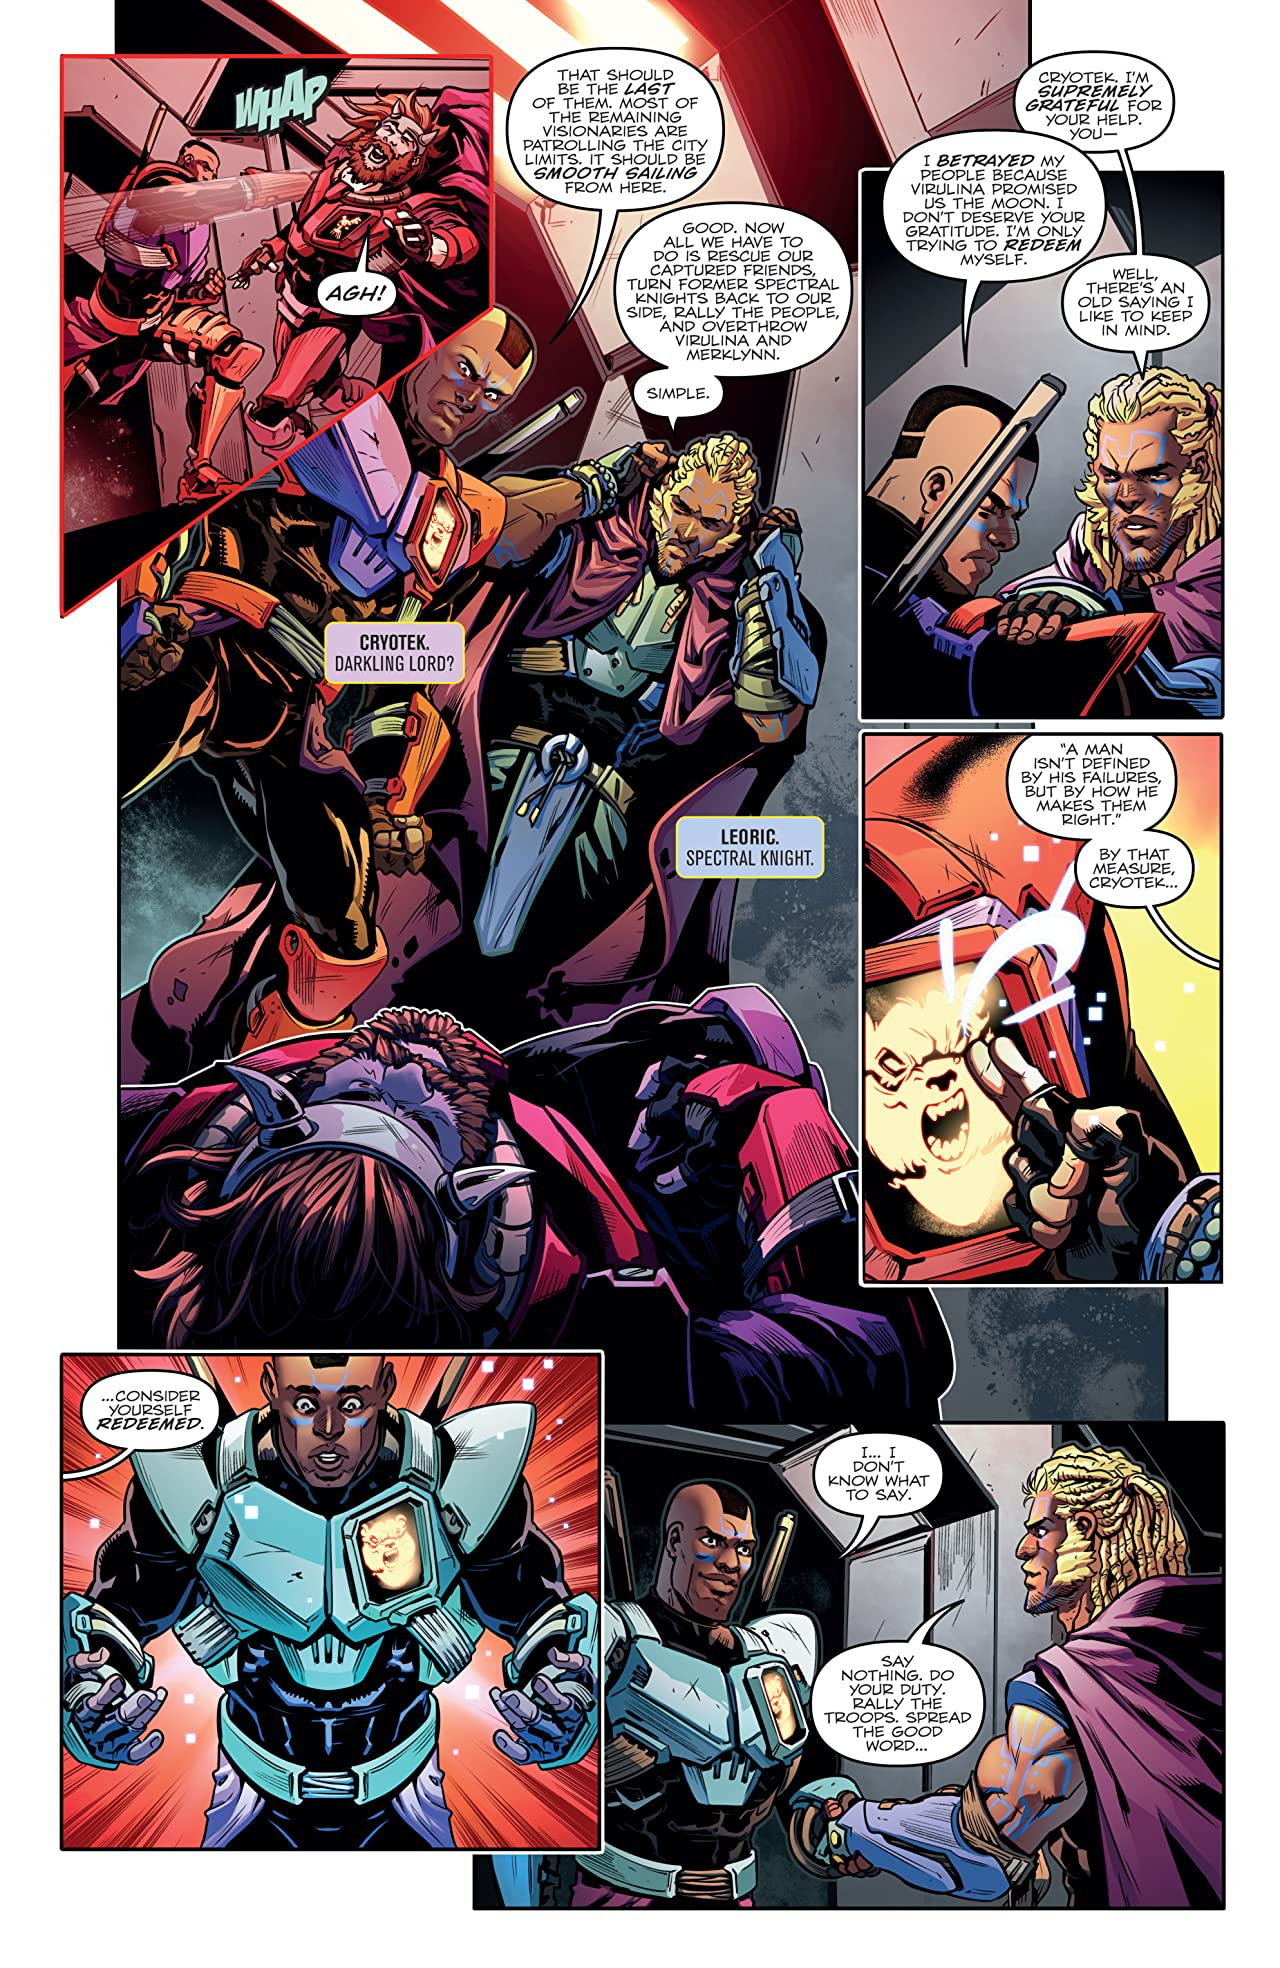 Transformers vs. The Visionaries #5